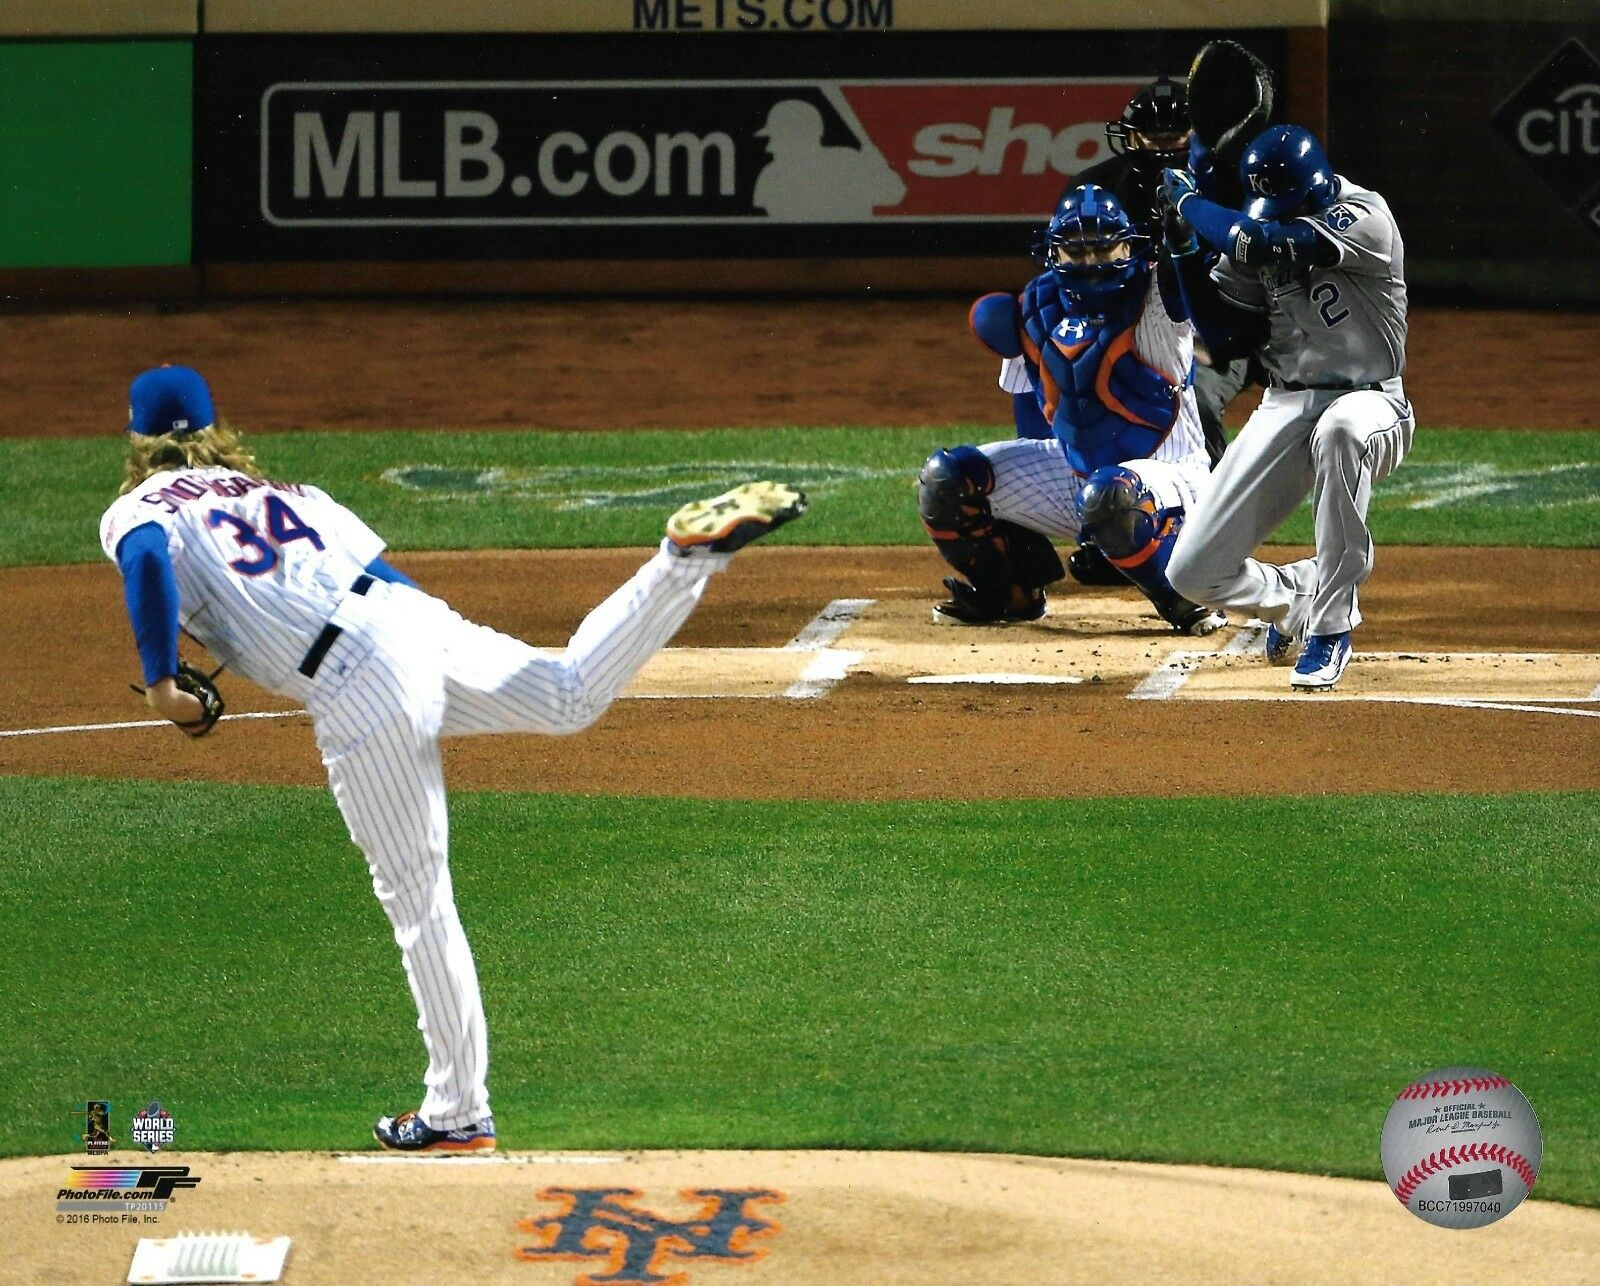 Noah Syndergaard 2015 World Series 1st pitch game 3 8×10 photo Mets Citi Field